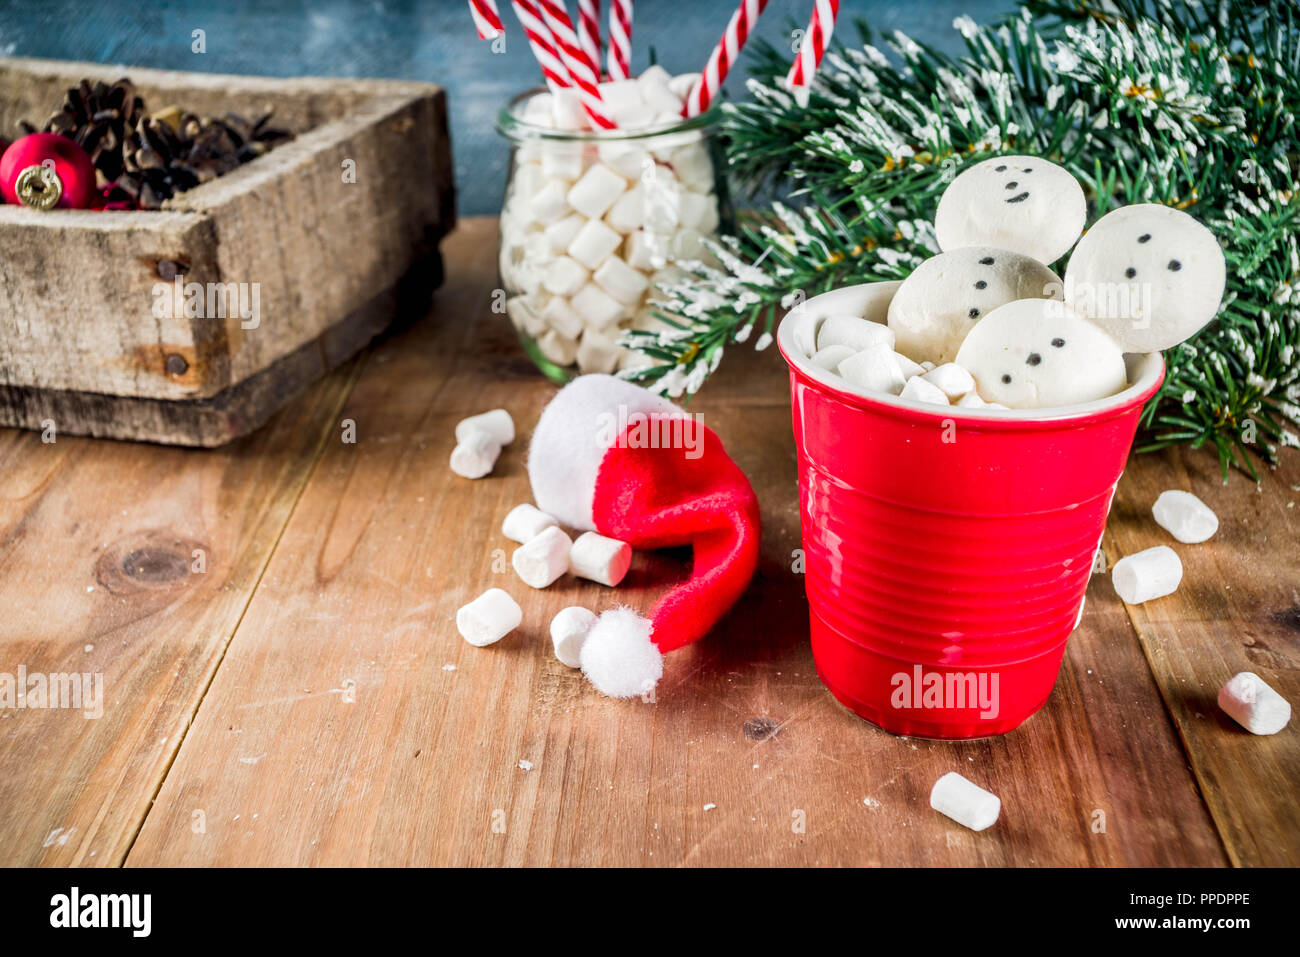 Hot Chocolate With Creative Marshmallow In The Form Of Snowmen With Christmas Decorations In A Box Wooden Background Copy Space Stock Photo Alamy